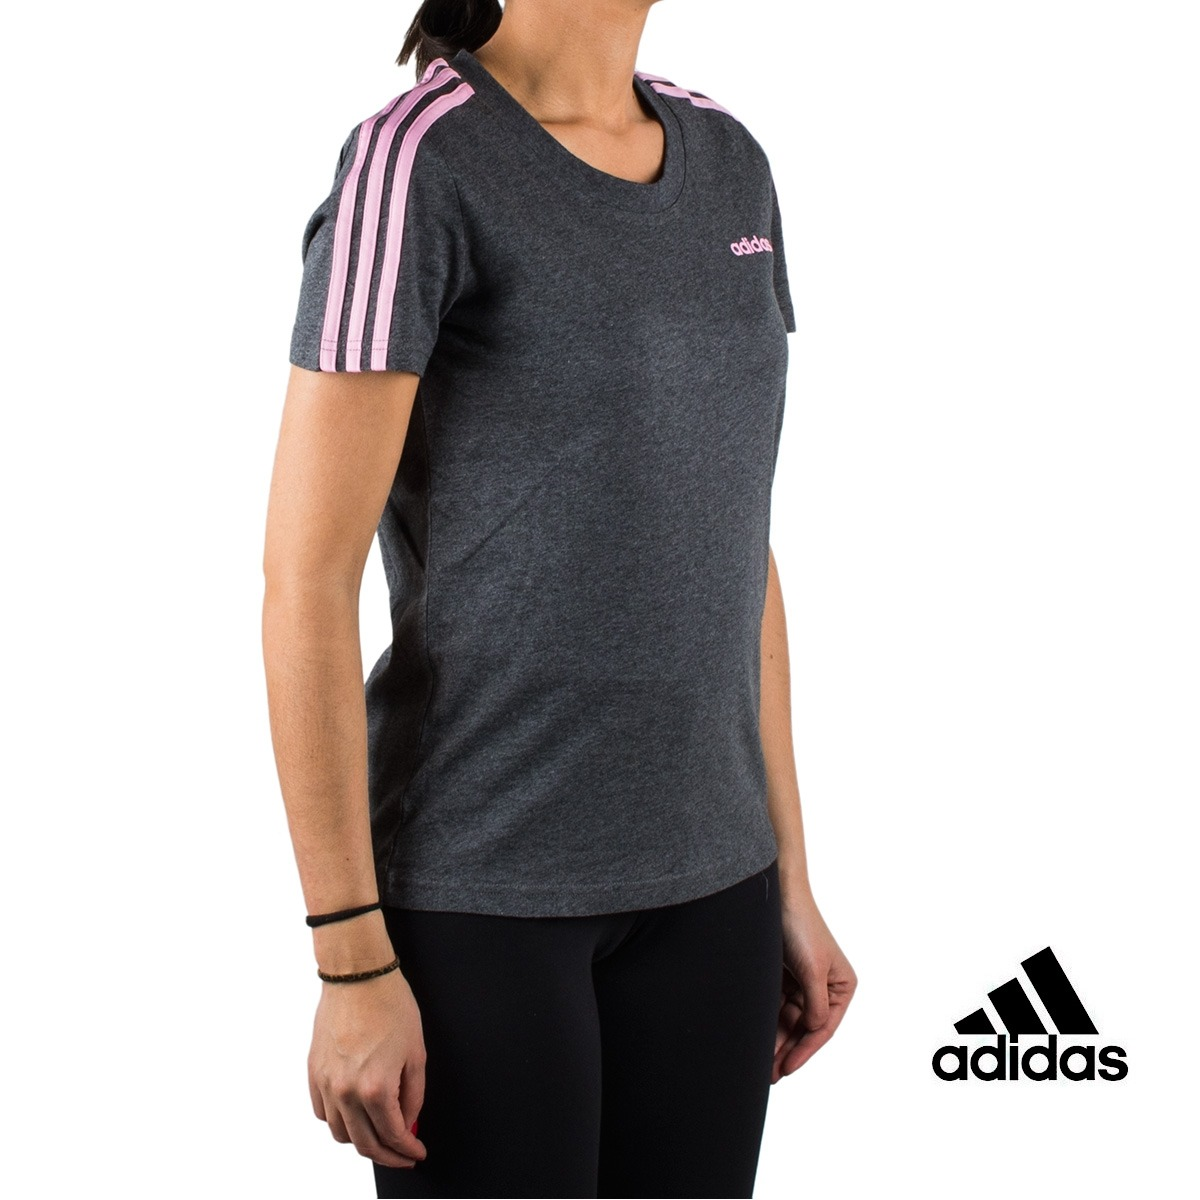 Adidas Camiseta Essentials 3 stripes slim tee gris grey true pink white Mujer